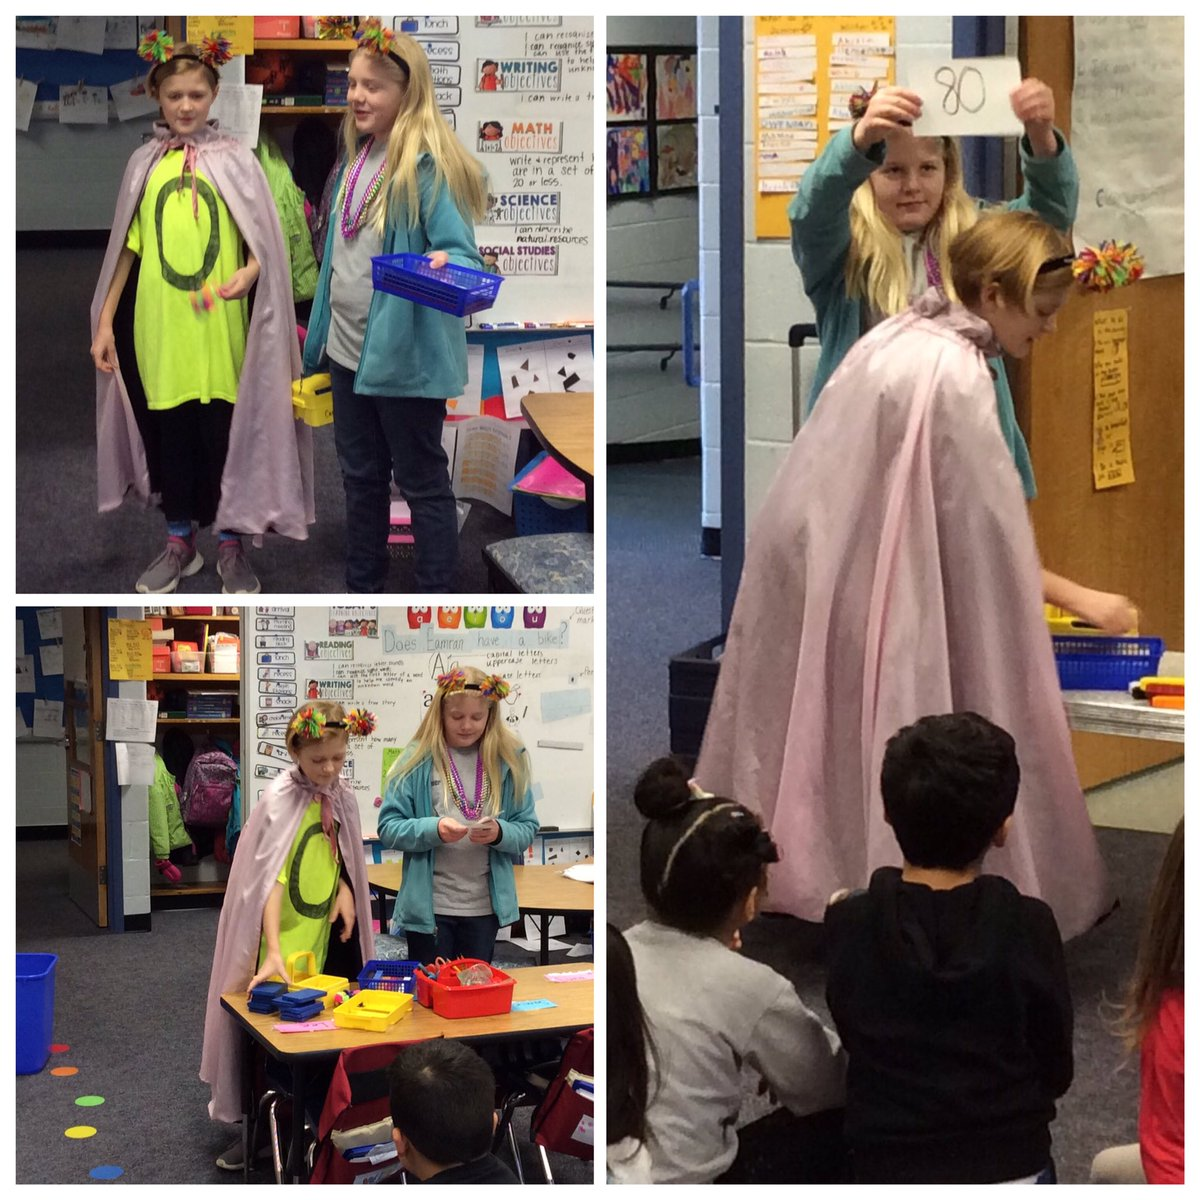 It's the 80th Day of School <a target='_blank' href='http://twitter.com/CampbellAPS'>@CampbellAPS</a> and Zero the Hero and her assistant were out celebrating with the K and PreK classes again! <a target='_blank' href='http://twitter.com/msdrabyk'>@msdrabyk</a> <a target='_blank' href='http://twitter.com/mskleif'>@mskleif</a> <a target='_blank' href='http://twitter.com/OConnor4_5'>@OConnor4_5</a> <a target='_blank' href='http://twitter.com/MsSokol1'>@MsSokol1</a> <a target='_blank' href='http://twitter.com/meekim16'>@meekim16</a> <a target='_blank' href='http://twitter.com/wadeturneraps'>@wadeturneraps</a> <a target='_blank' href='https://t.co/VfDC8aLTt9'>https://t.co/VfDC8aLTt9</a>